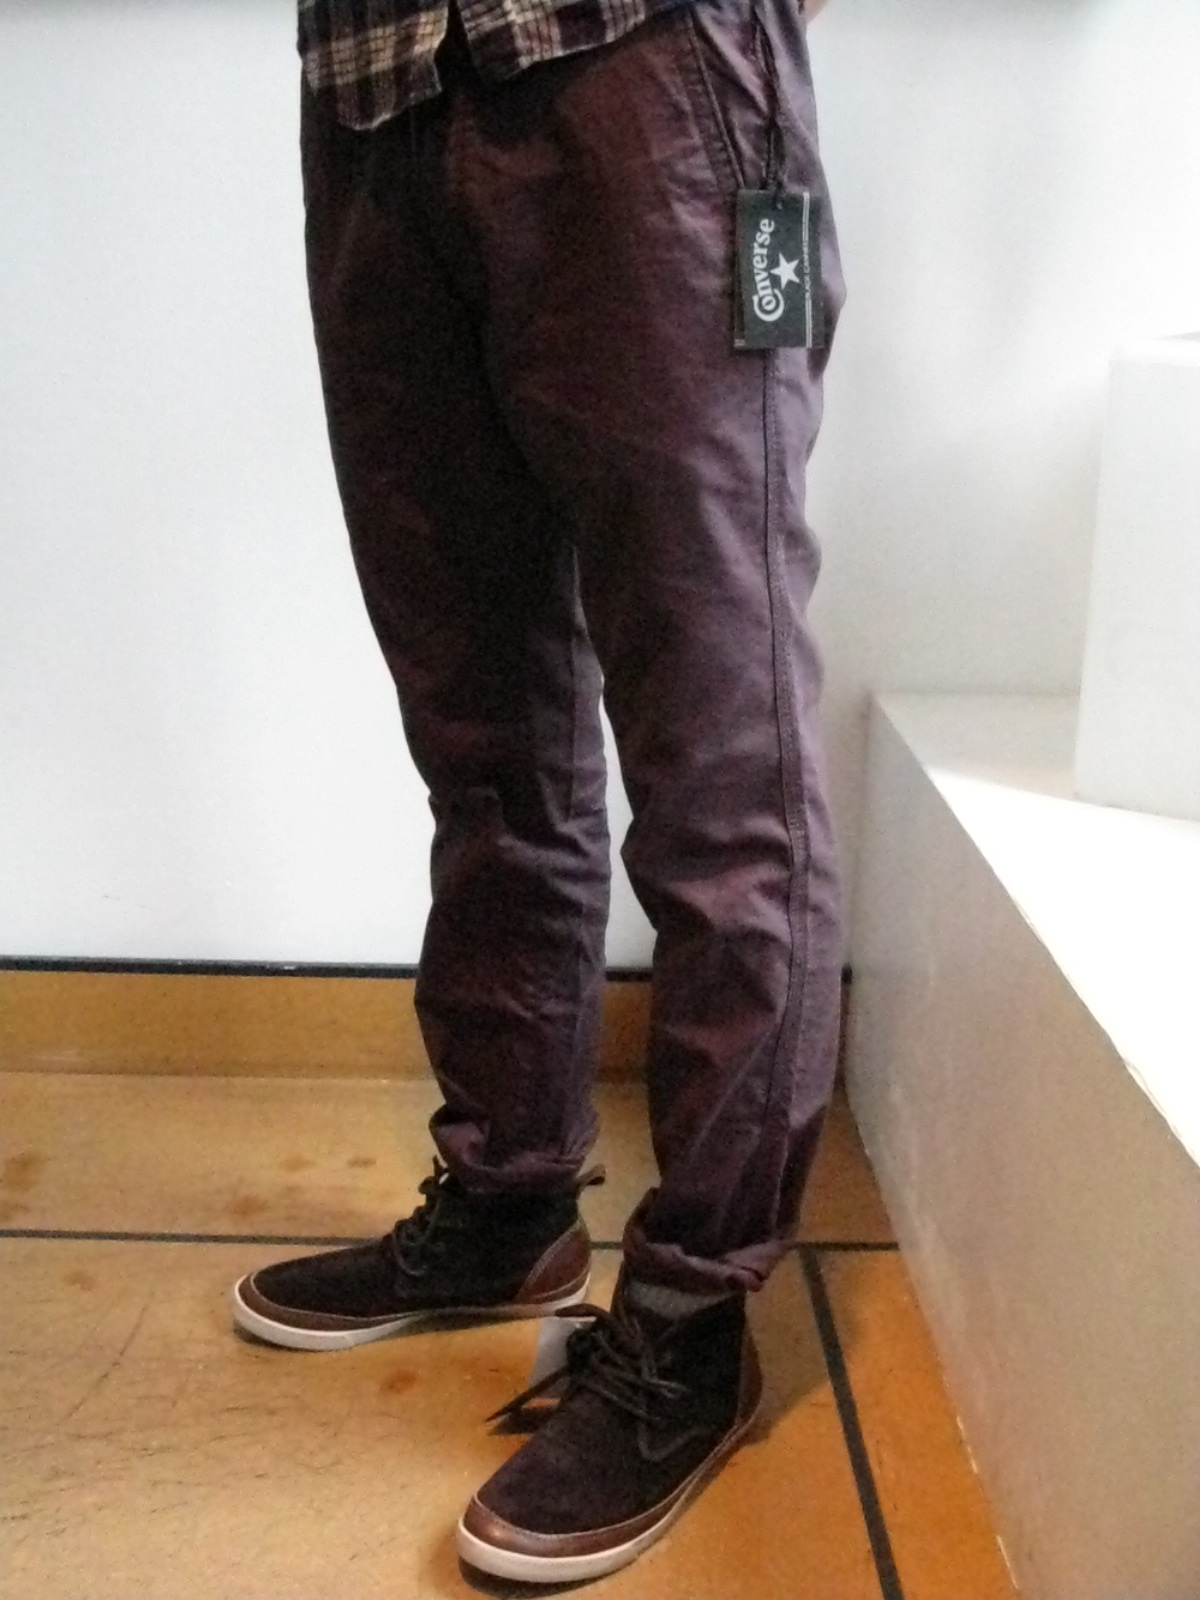 36bdfb4a380394 Converse Black Canvas new Fall raven grey chinos. Tapered slim fit. Styled  with Converse by John Varvatos brown suede sprint grip desert sneakers.